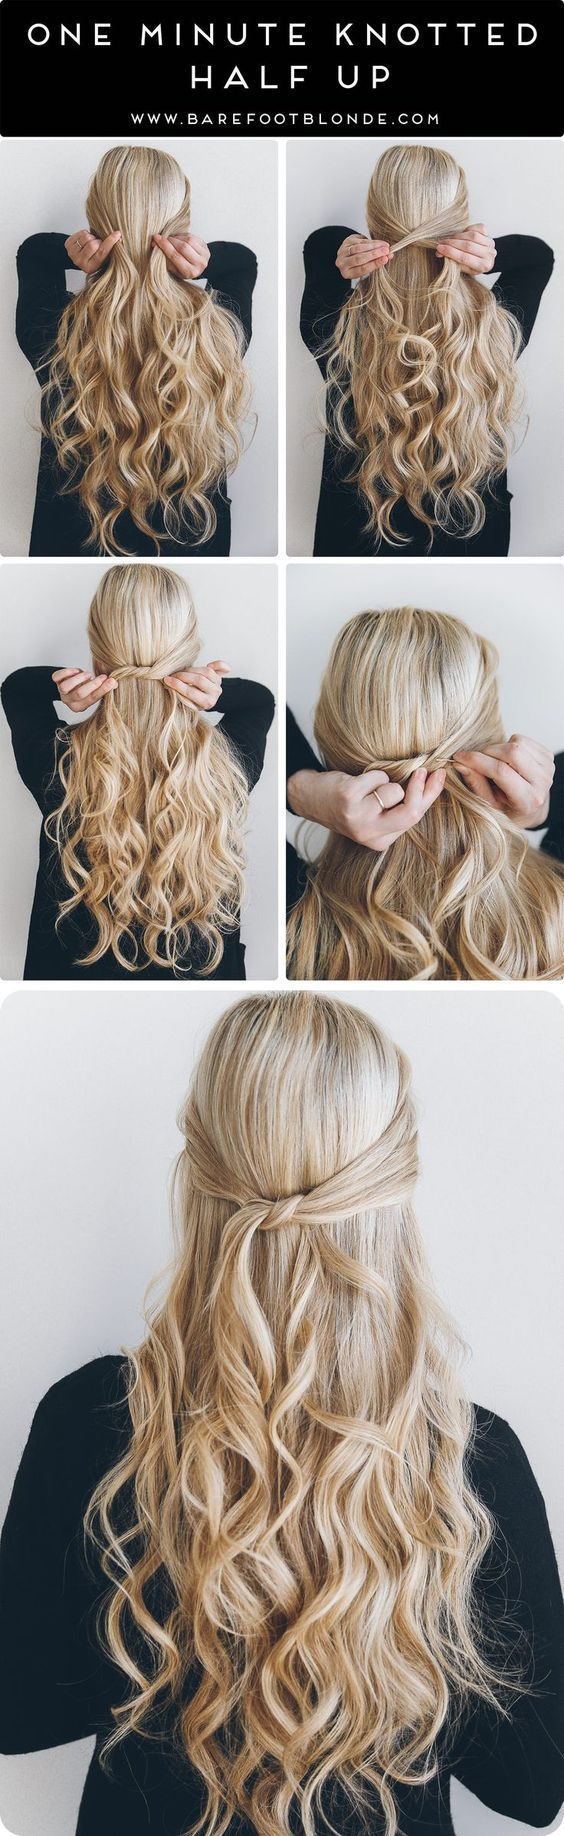 Easy half up half down hairstyles one minute knotted half up hair